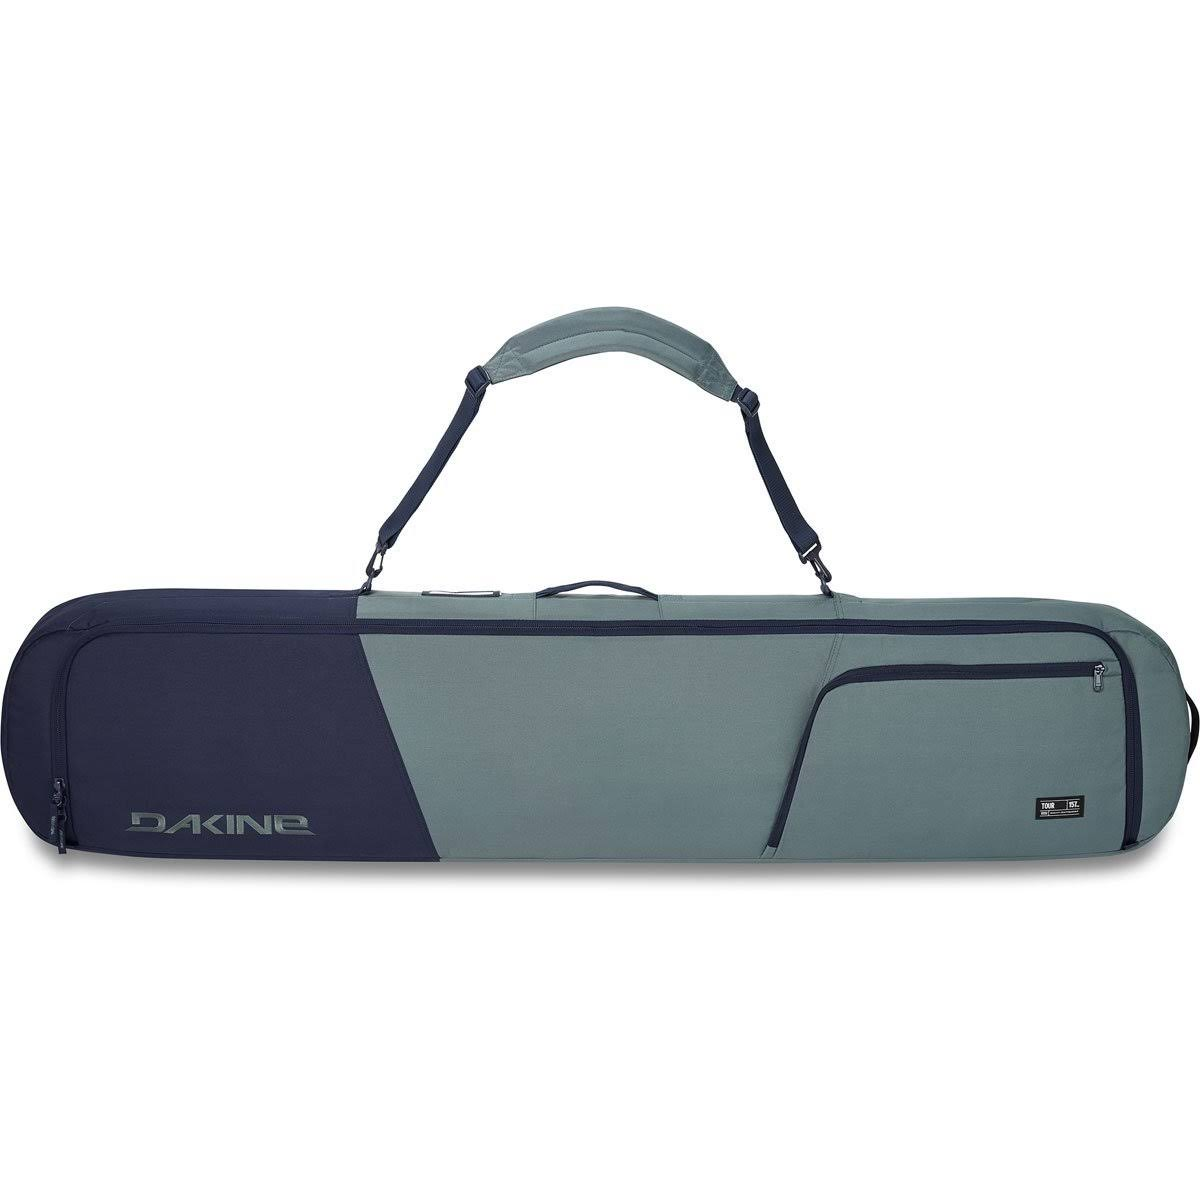 Dakine Tour Fully Padded Snowboard Bag - 165mm, Dark Slate